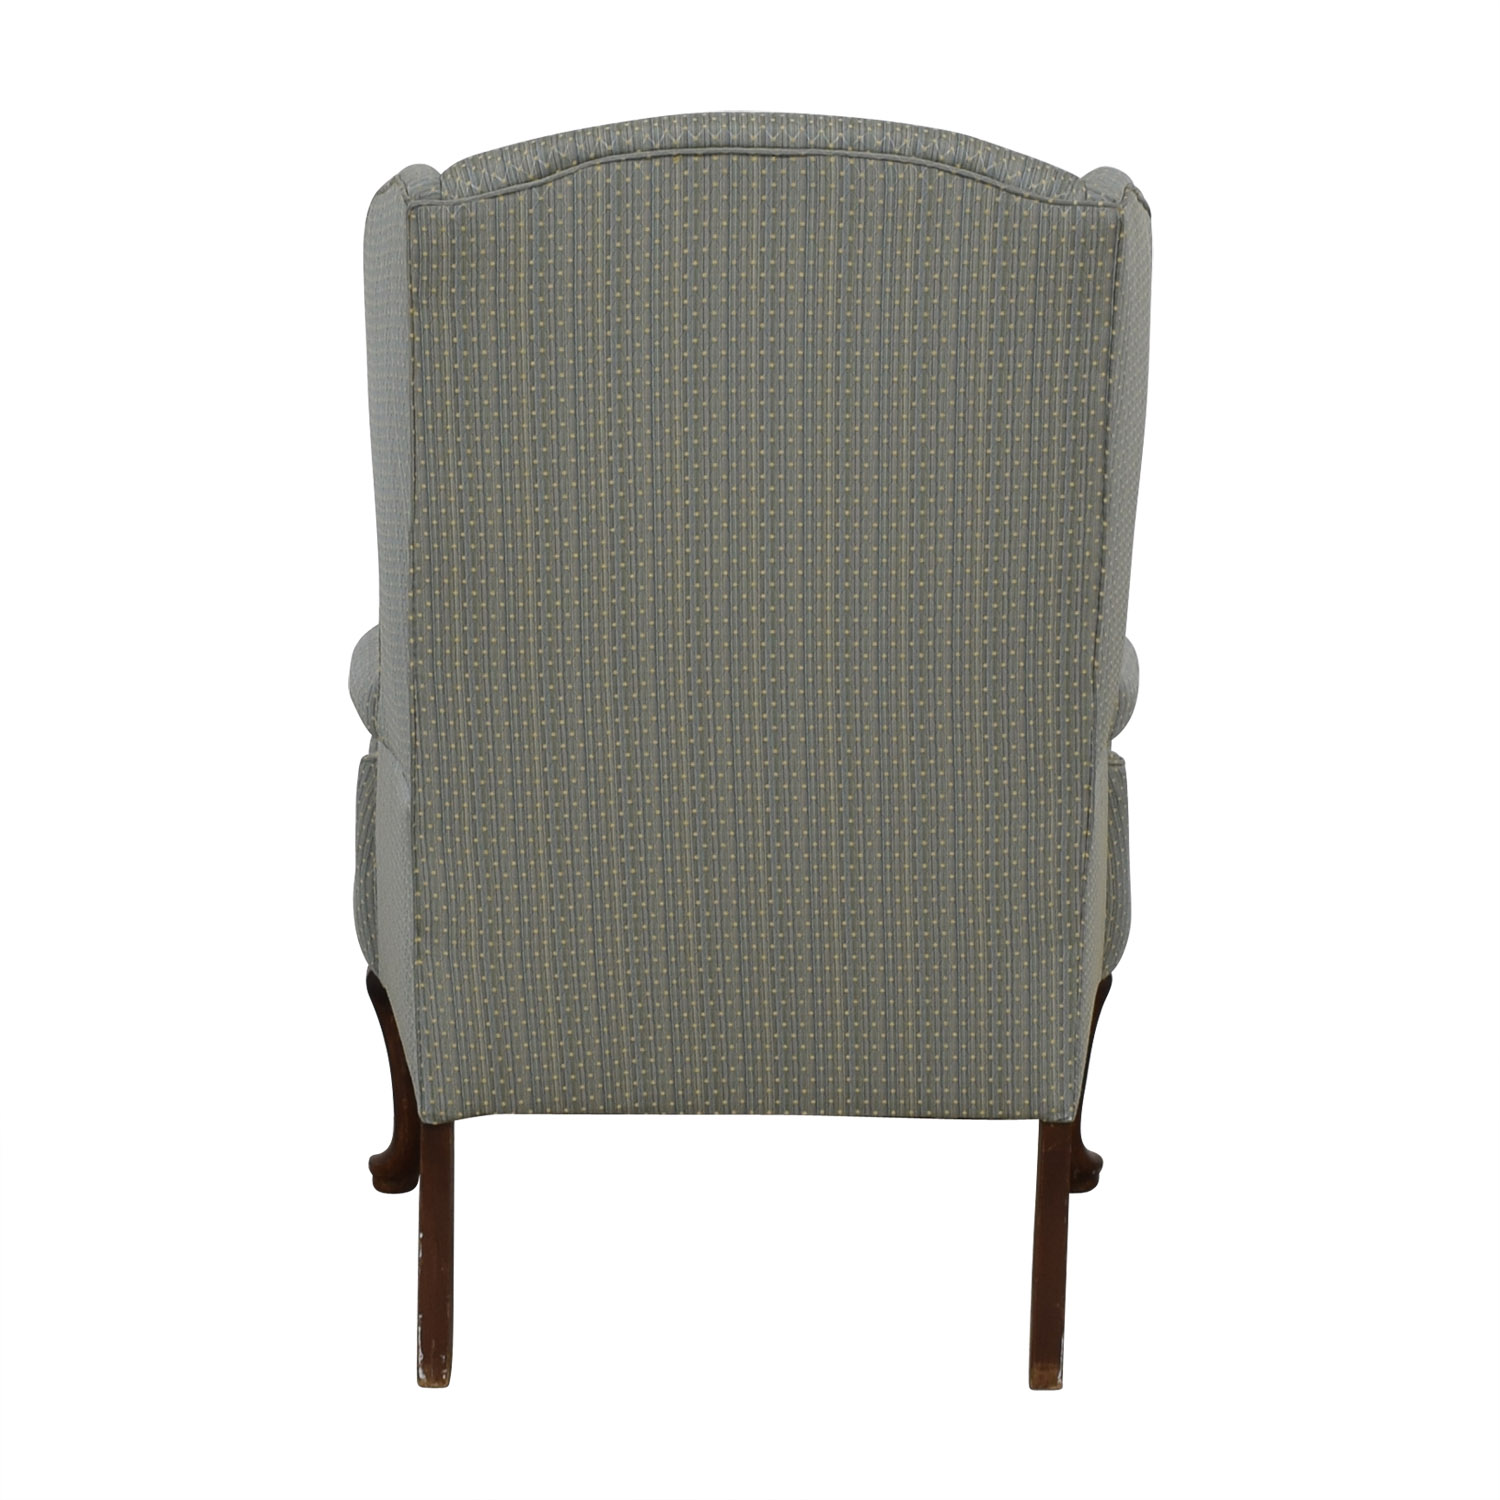 Blue Wingback Accent Chair on sale